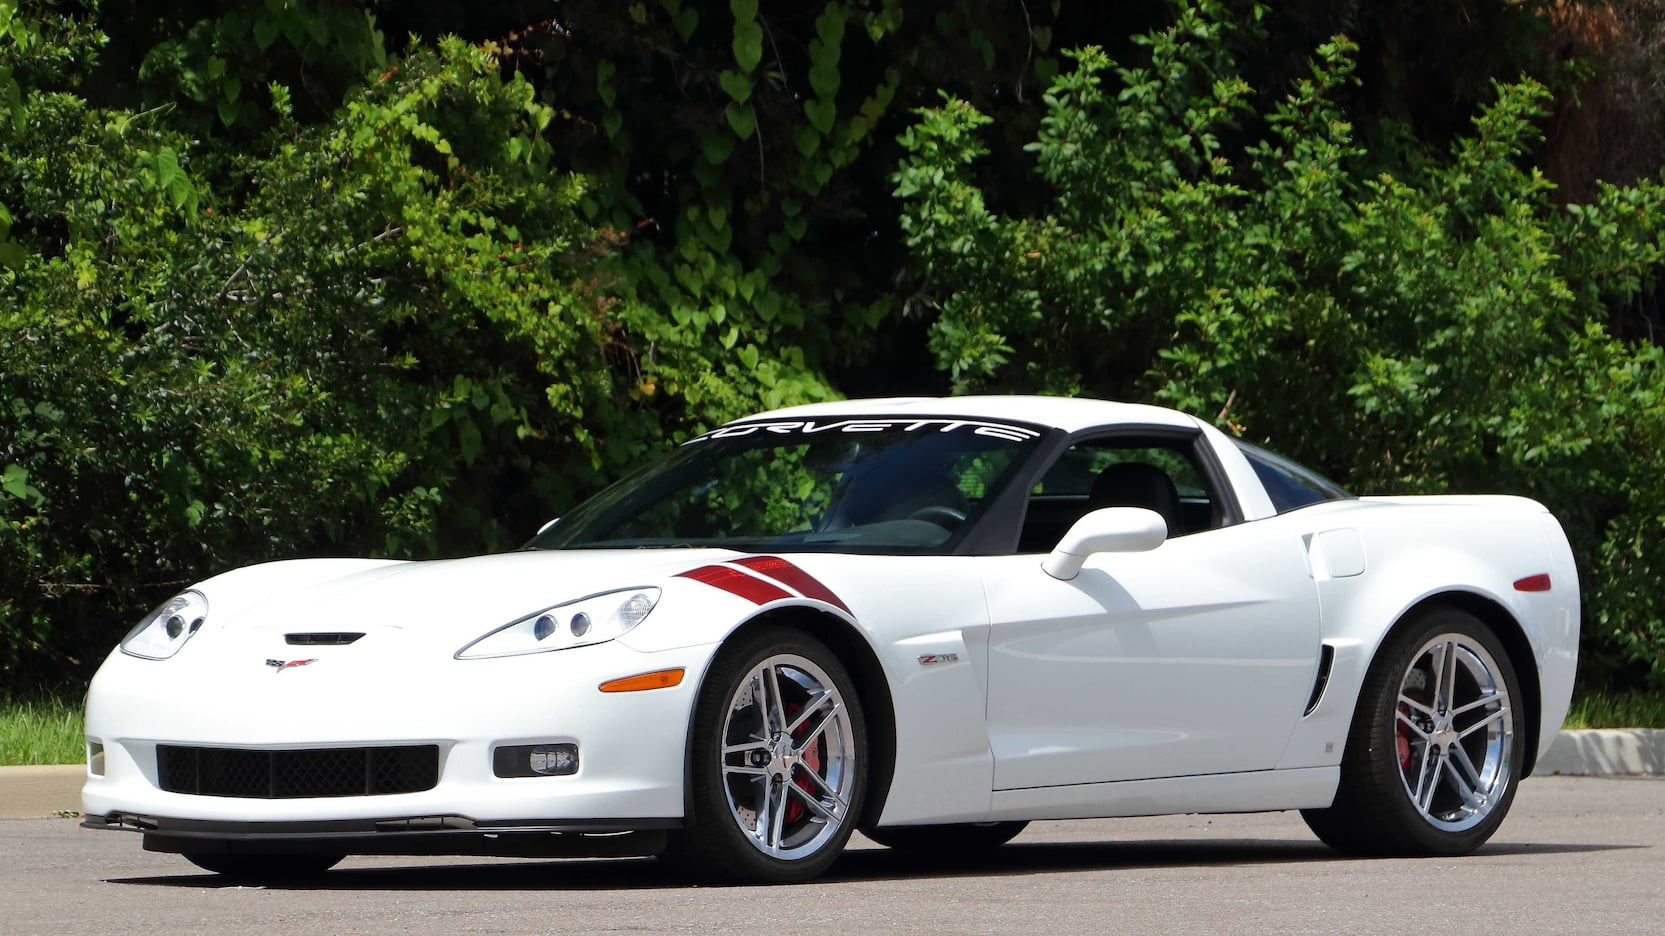 2007 Corvette Ron Fellows Edition VIN